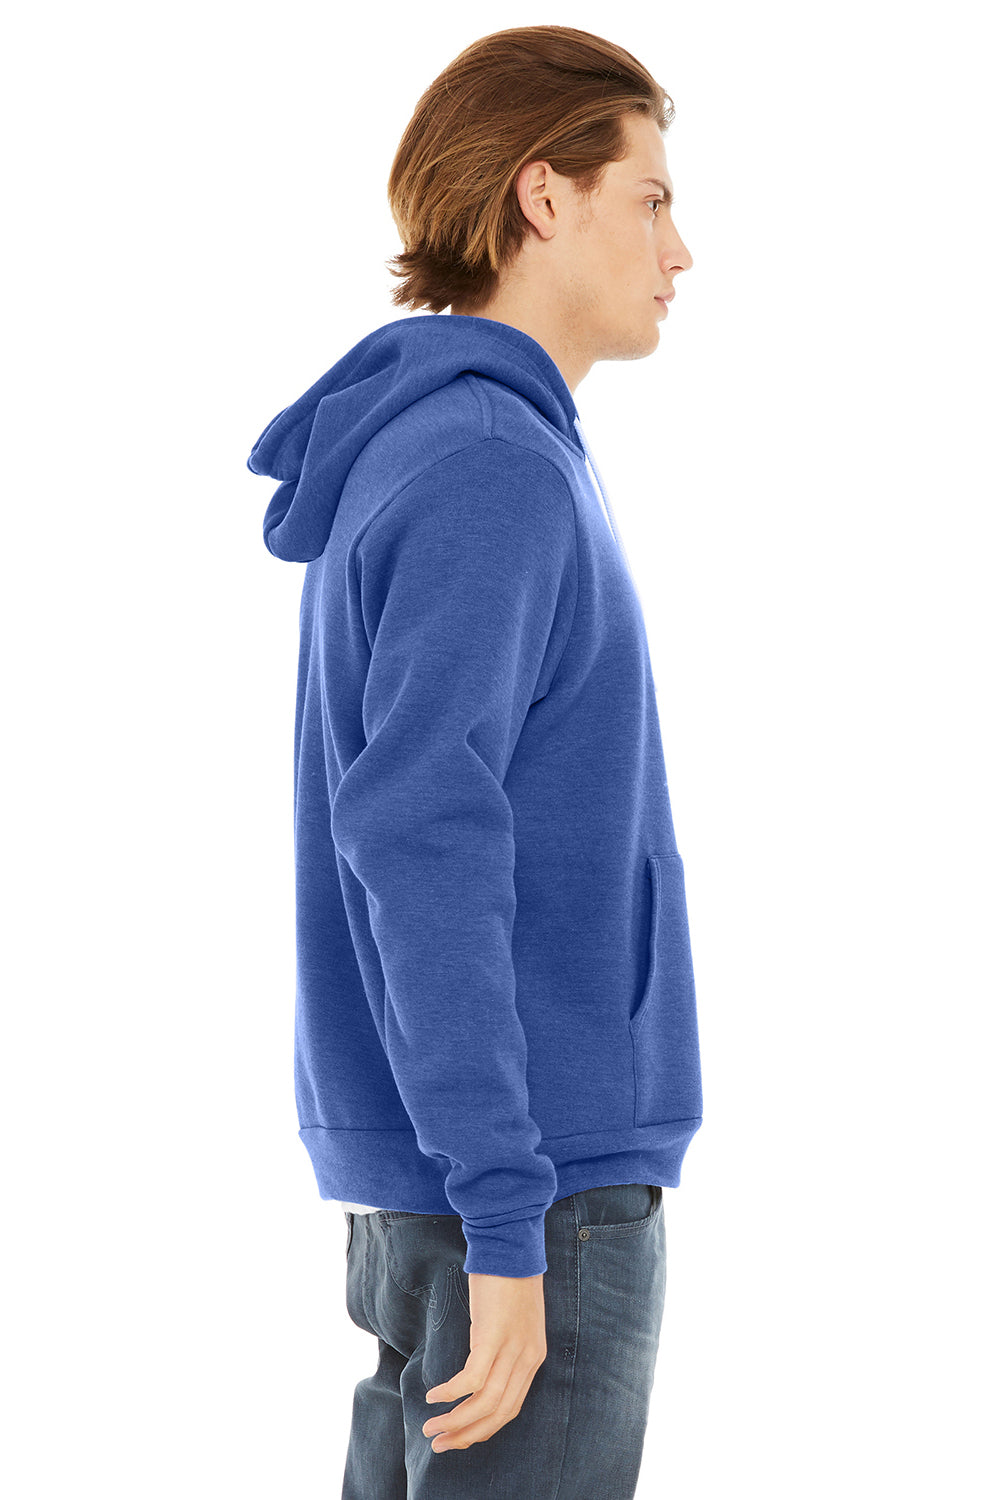 Bella + Canvas 3719 Mens Sponge Fleece Hooded Sweatshirt Hoodie Royal Blue Side